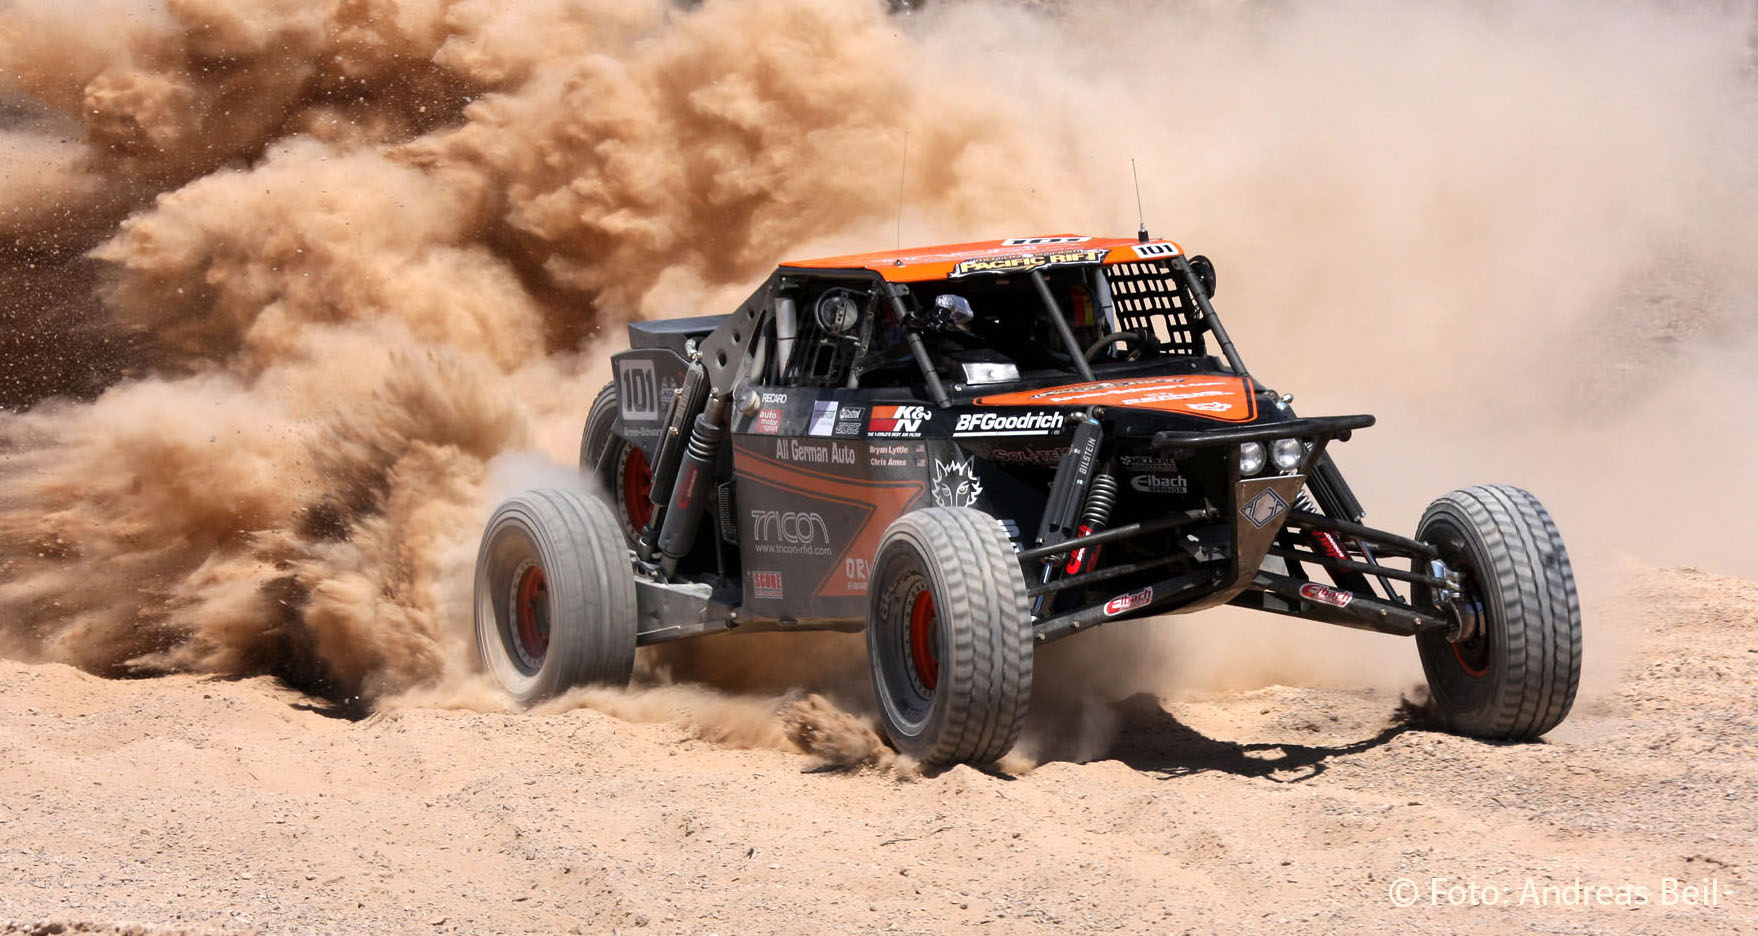 rc cars store with Entry List For The Baja 300 Powerdays Grows 1458 on 5 Tips To Prevent Lipo Battery Fires additionally Attachment further Attachment additionally Attachment together with Entry List For The Baja 300 Powerdays Grows 1458.